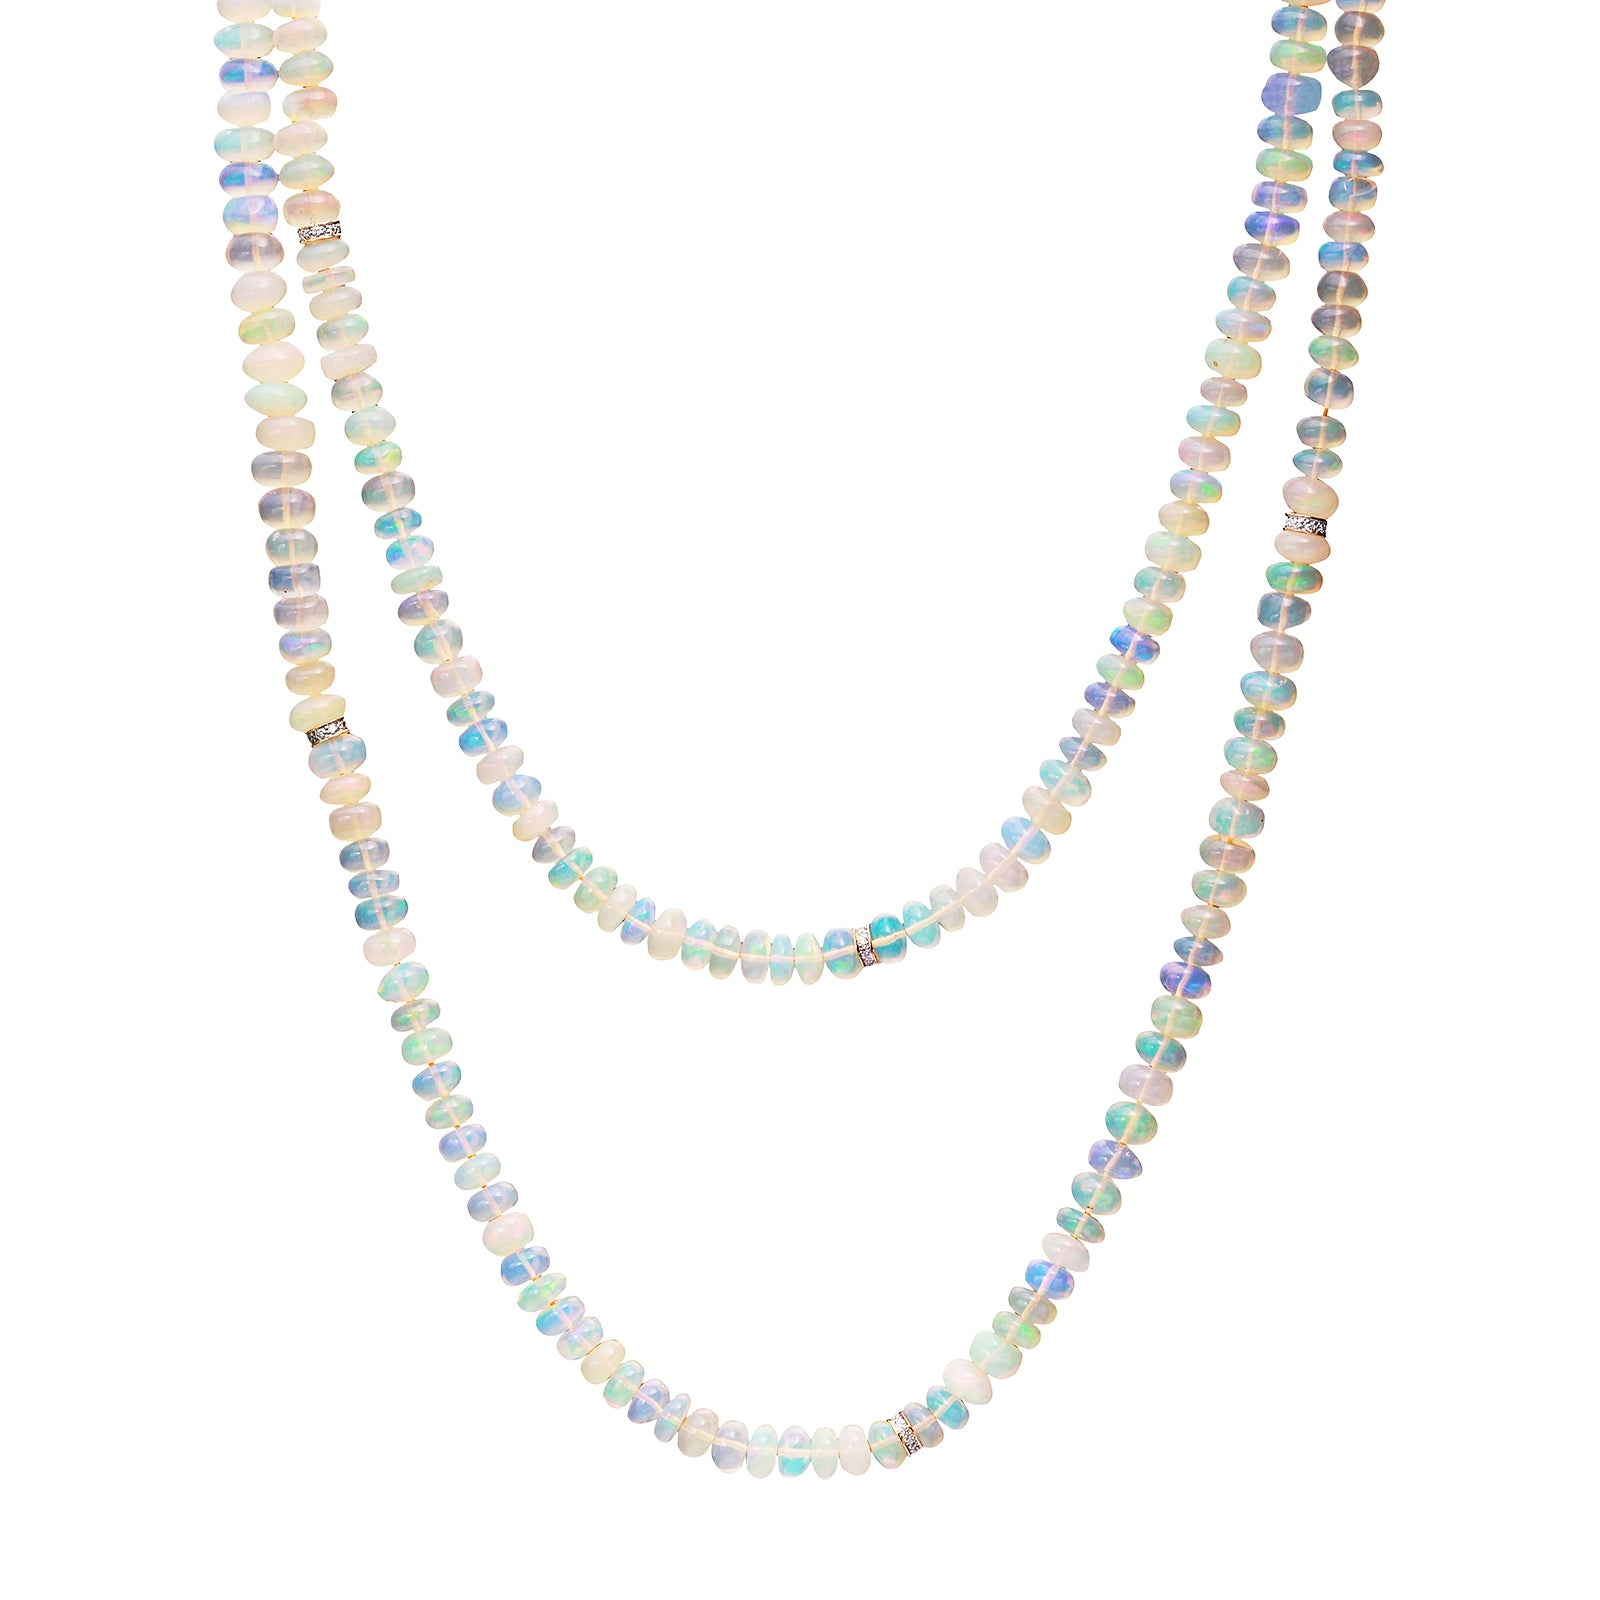 Nina Runsdorf Opal Bead Necklace - Necklaces - Broken English Jewelry